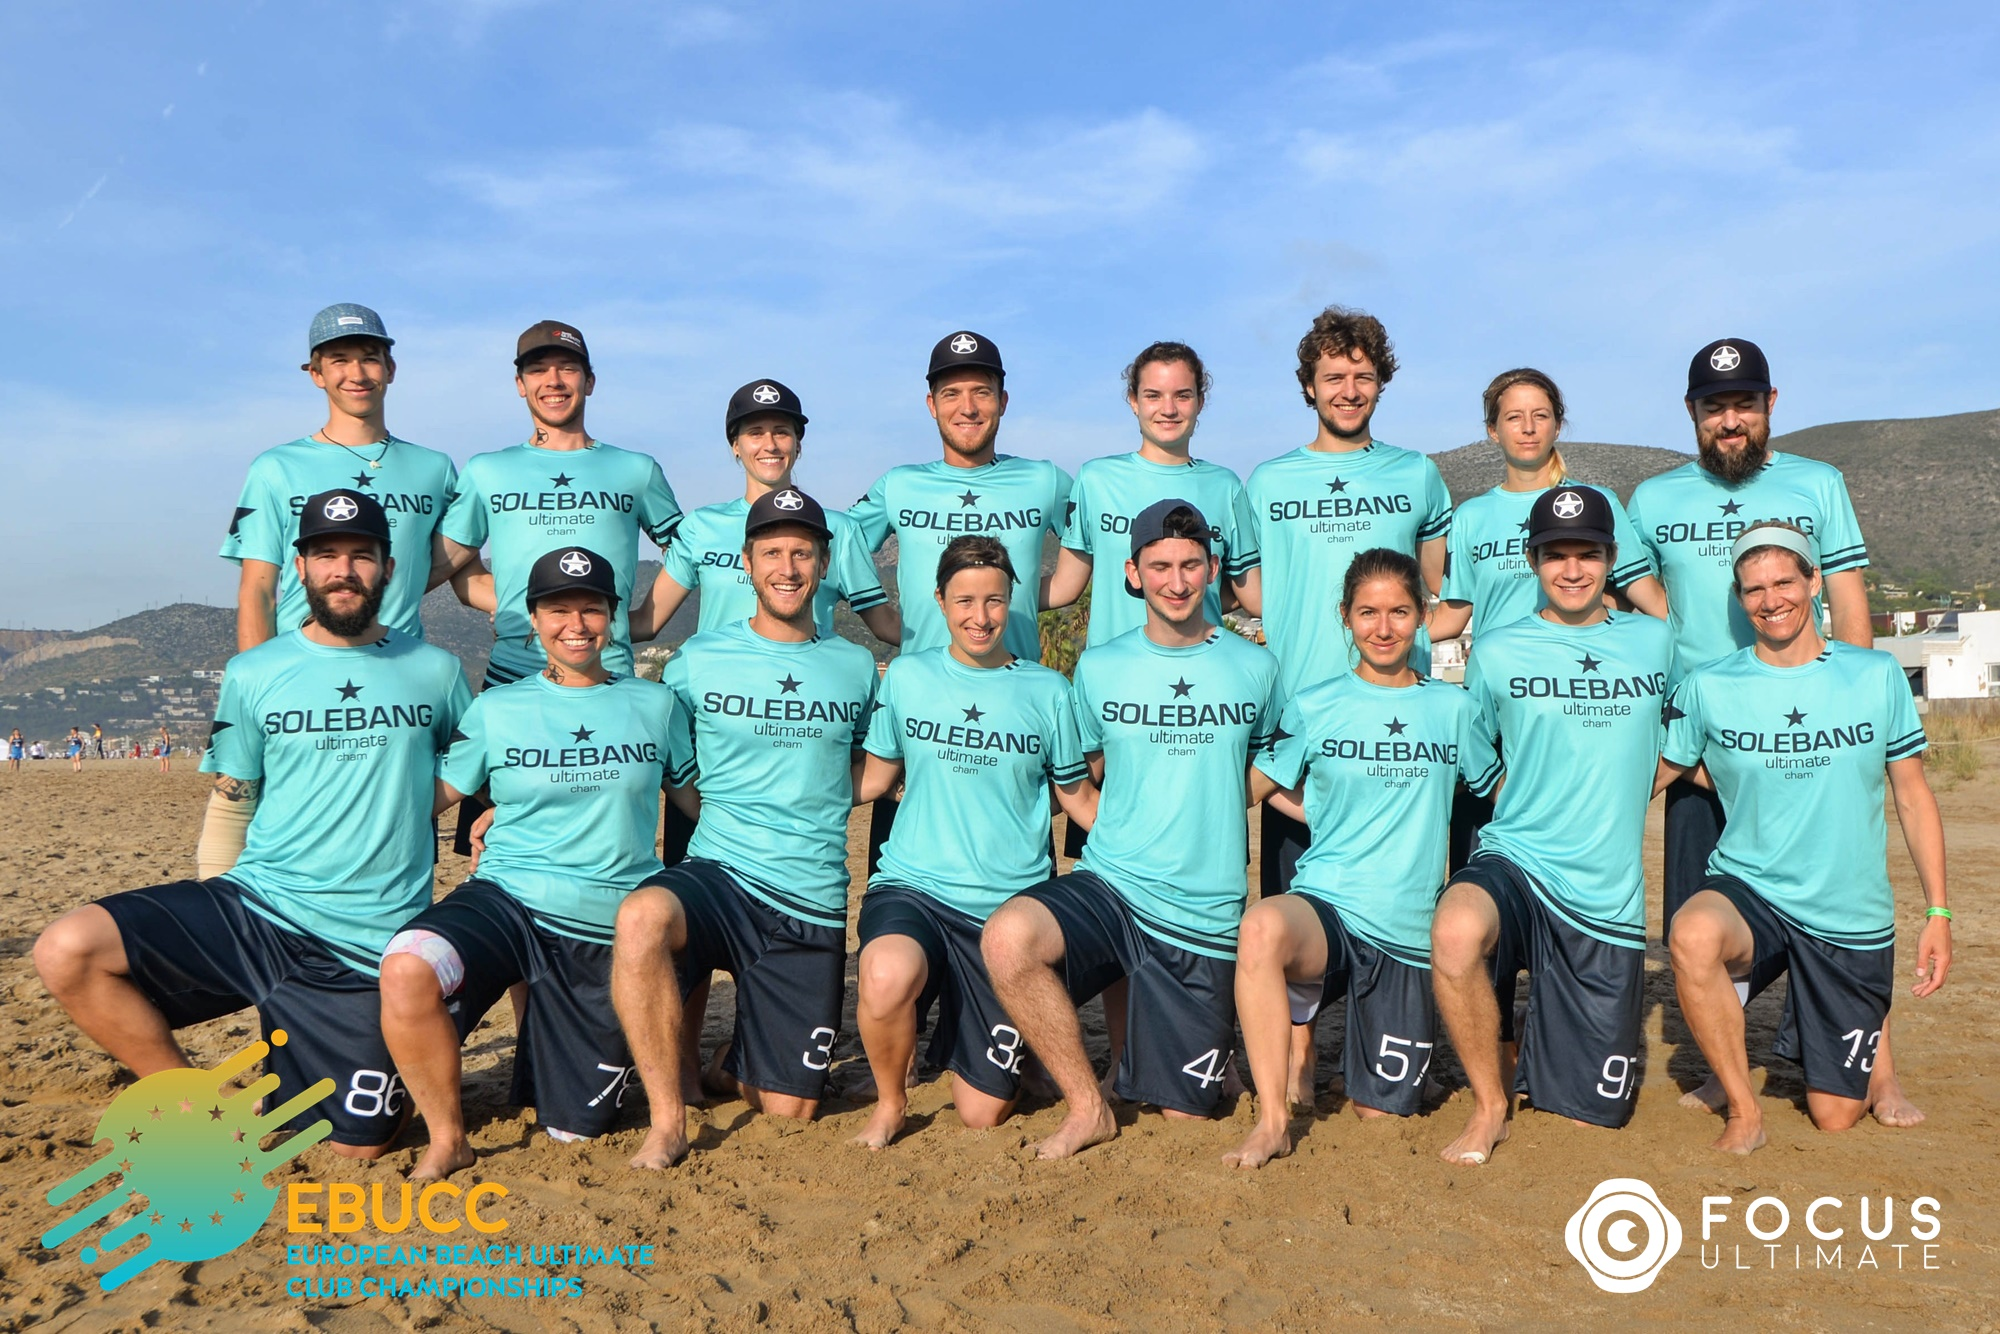 Team picture of Solebang Mixed